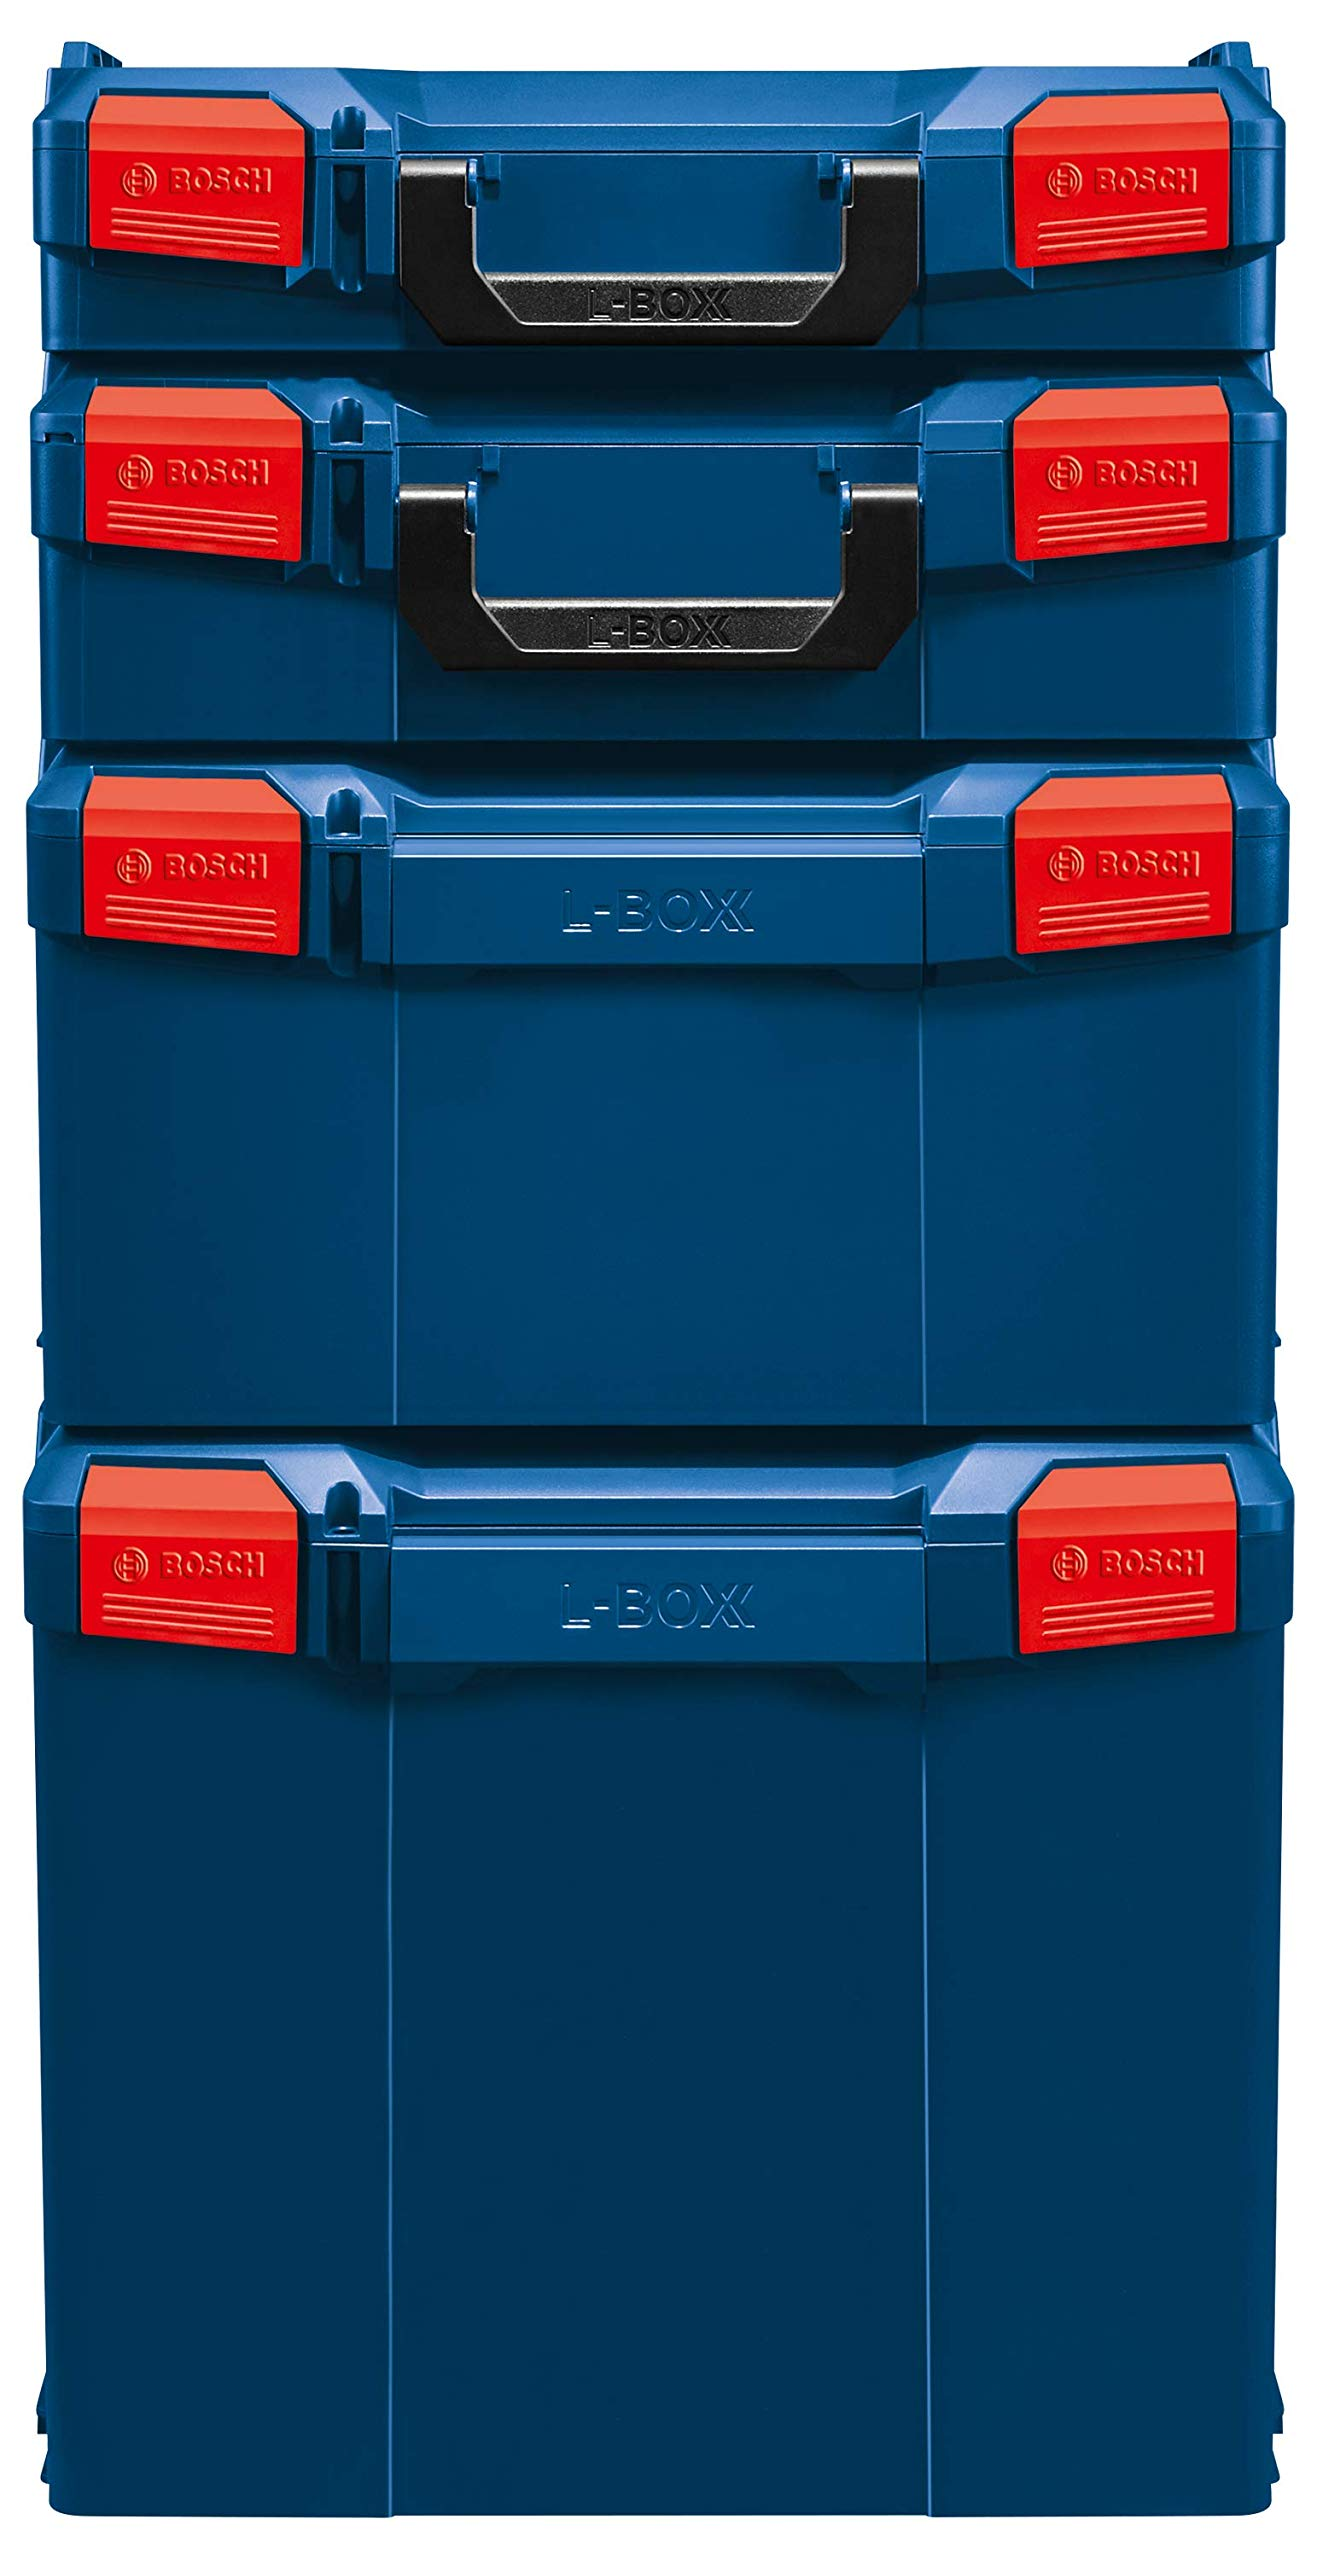 Bosch L-BOXX-1 4.5 In. x 14 In. x 17.5 In. Stackable Tool Storage Case by Bosch (Image #3)